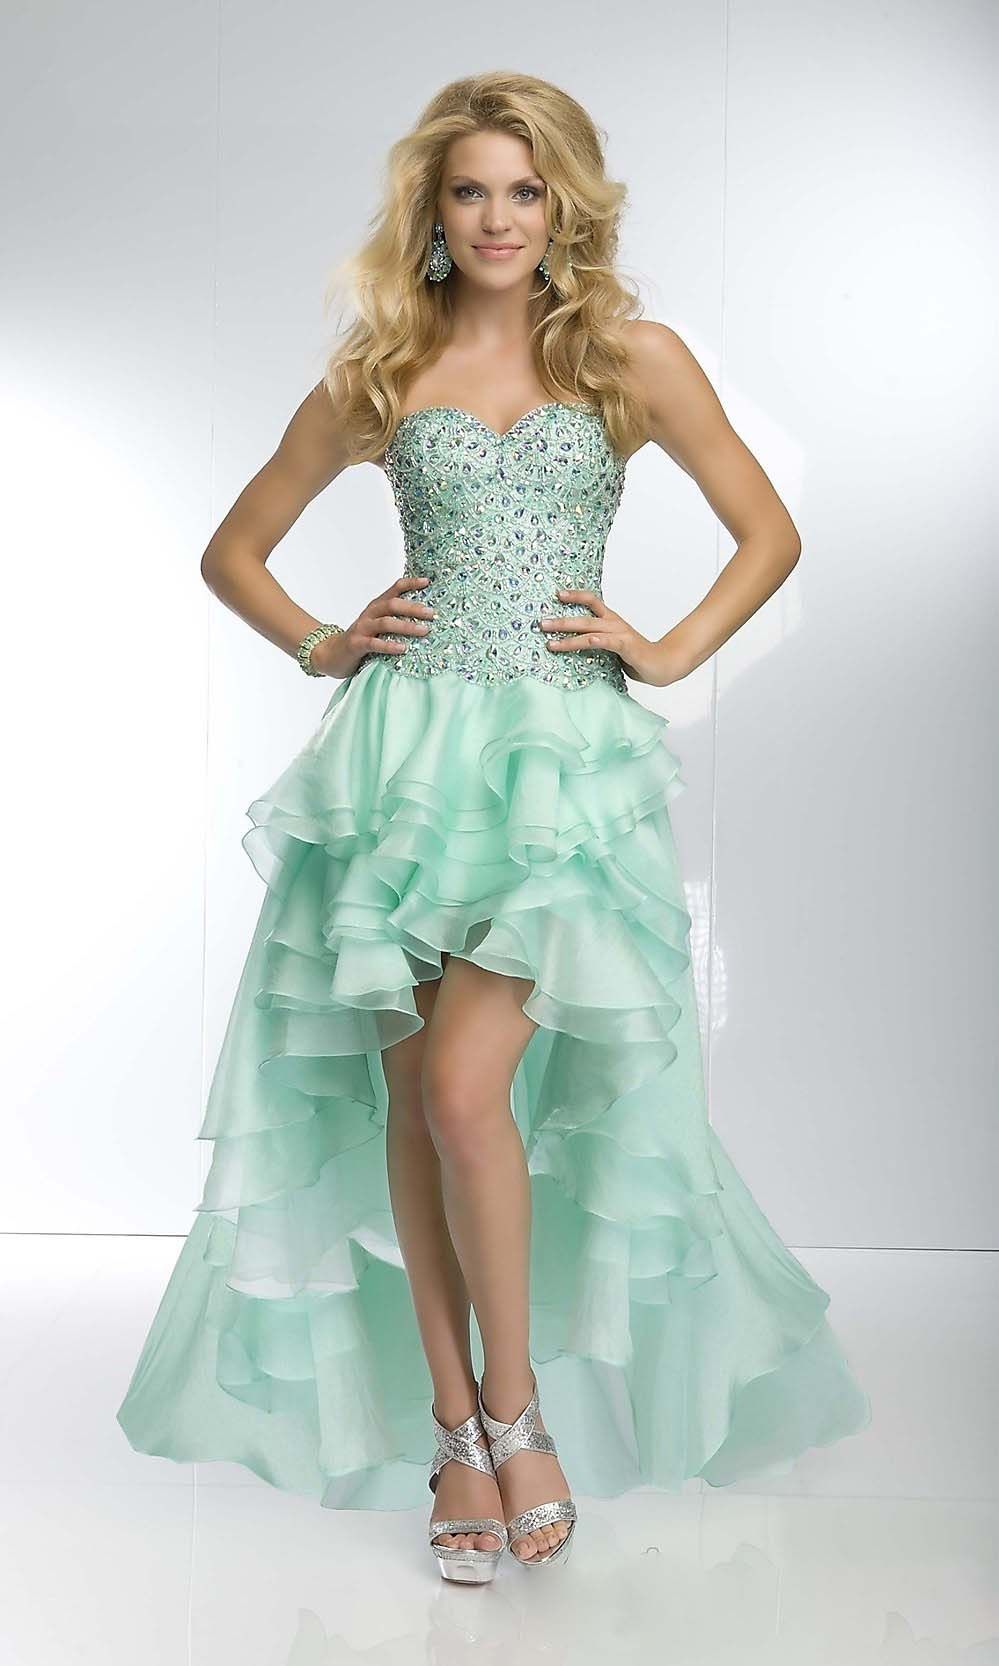 Junior High Low Prom Dresses for Cheap